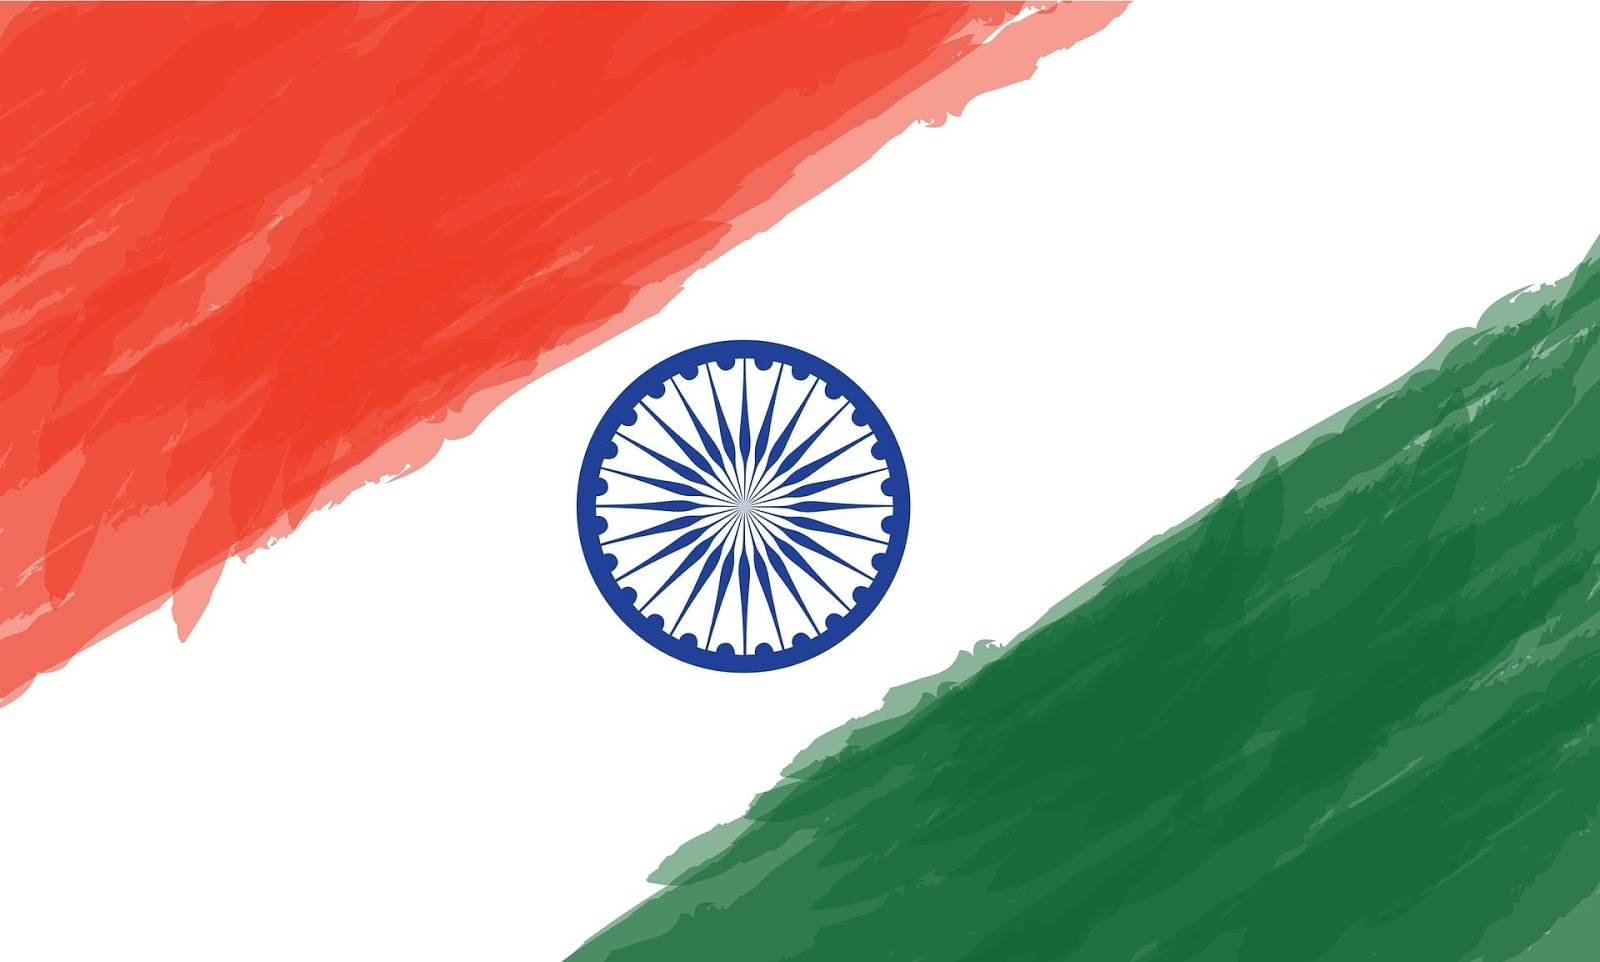 Indian Flag Images Wallpapers Download Indian%2BFlag%2BHD%2BWallpapers